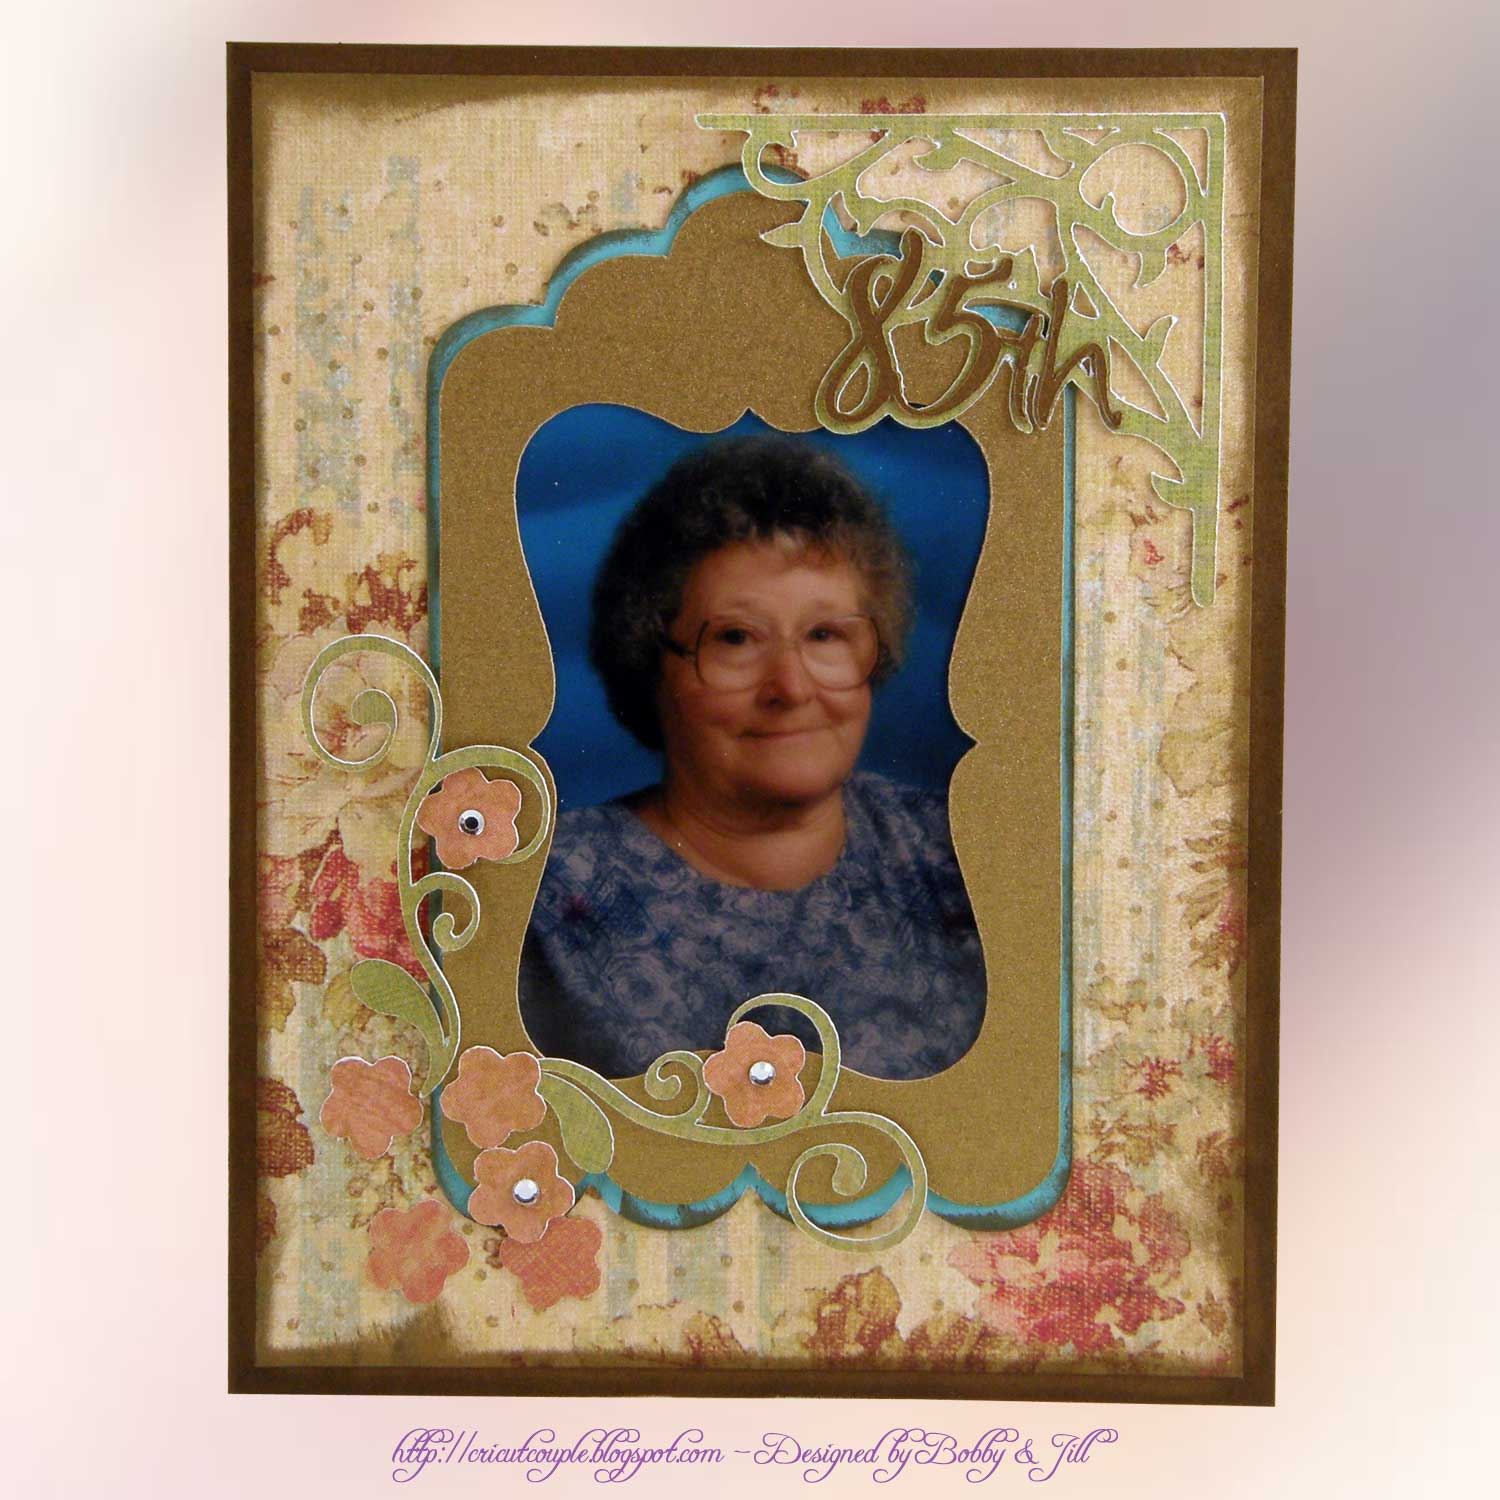 The Cartridges Used Were Sentimentals Heritage Calligraphy Collection Serenade And Cindy Loo Frame Is From Cut At A Height Of 430